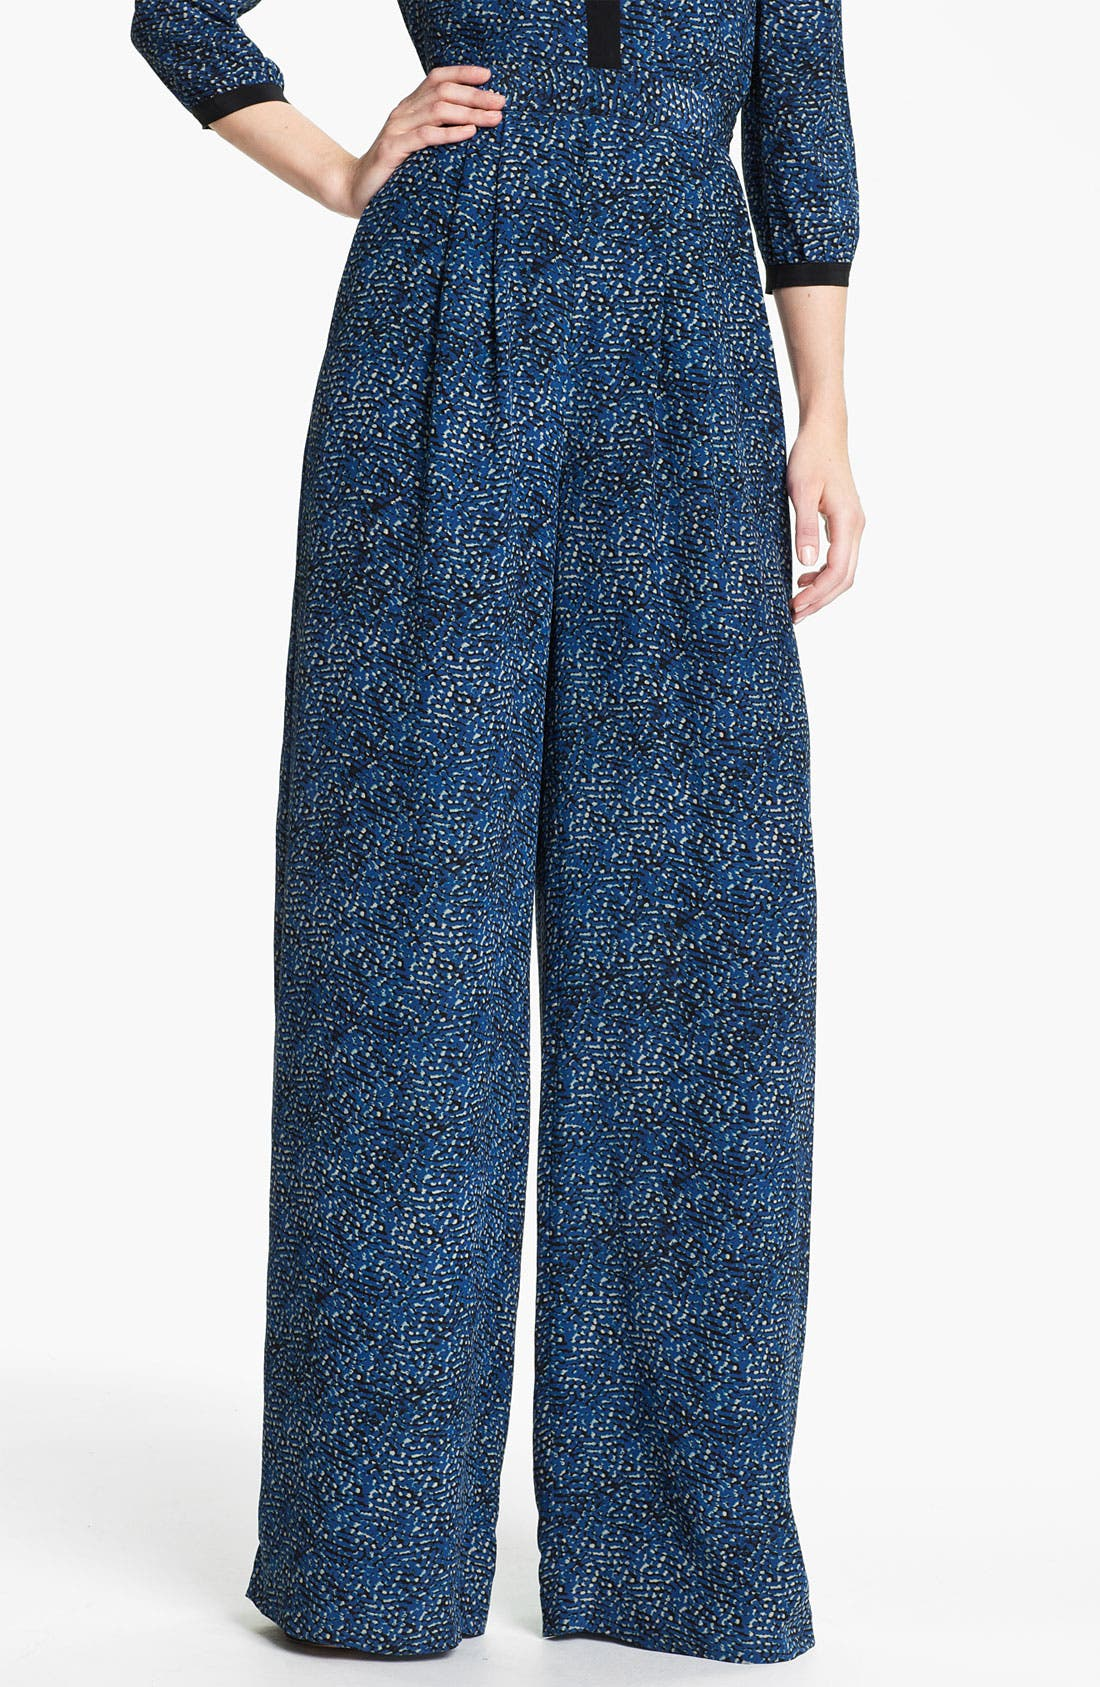 Alternate Image 1 Selected - Rachel Zoe 'Tori' Abstract Dot Print Silk Pants